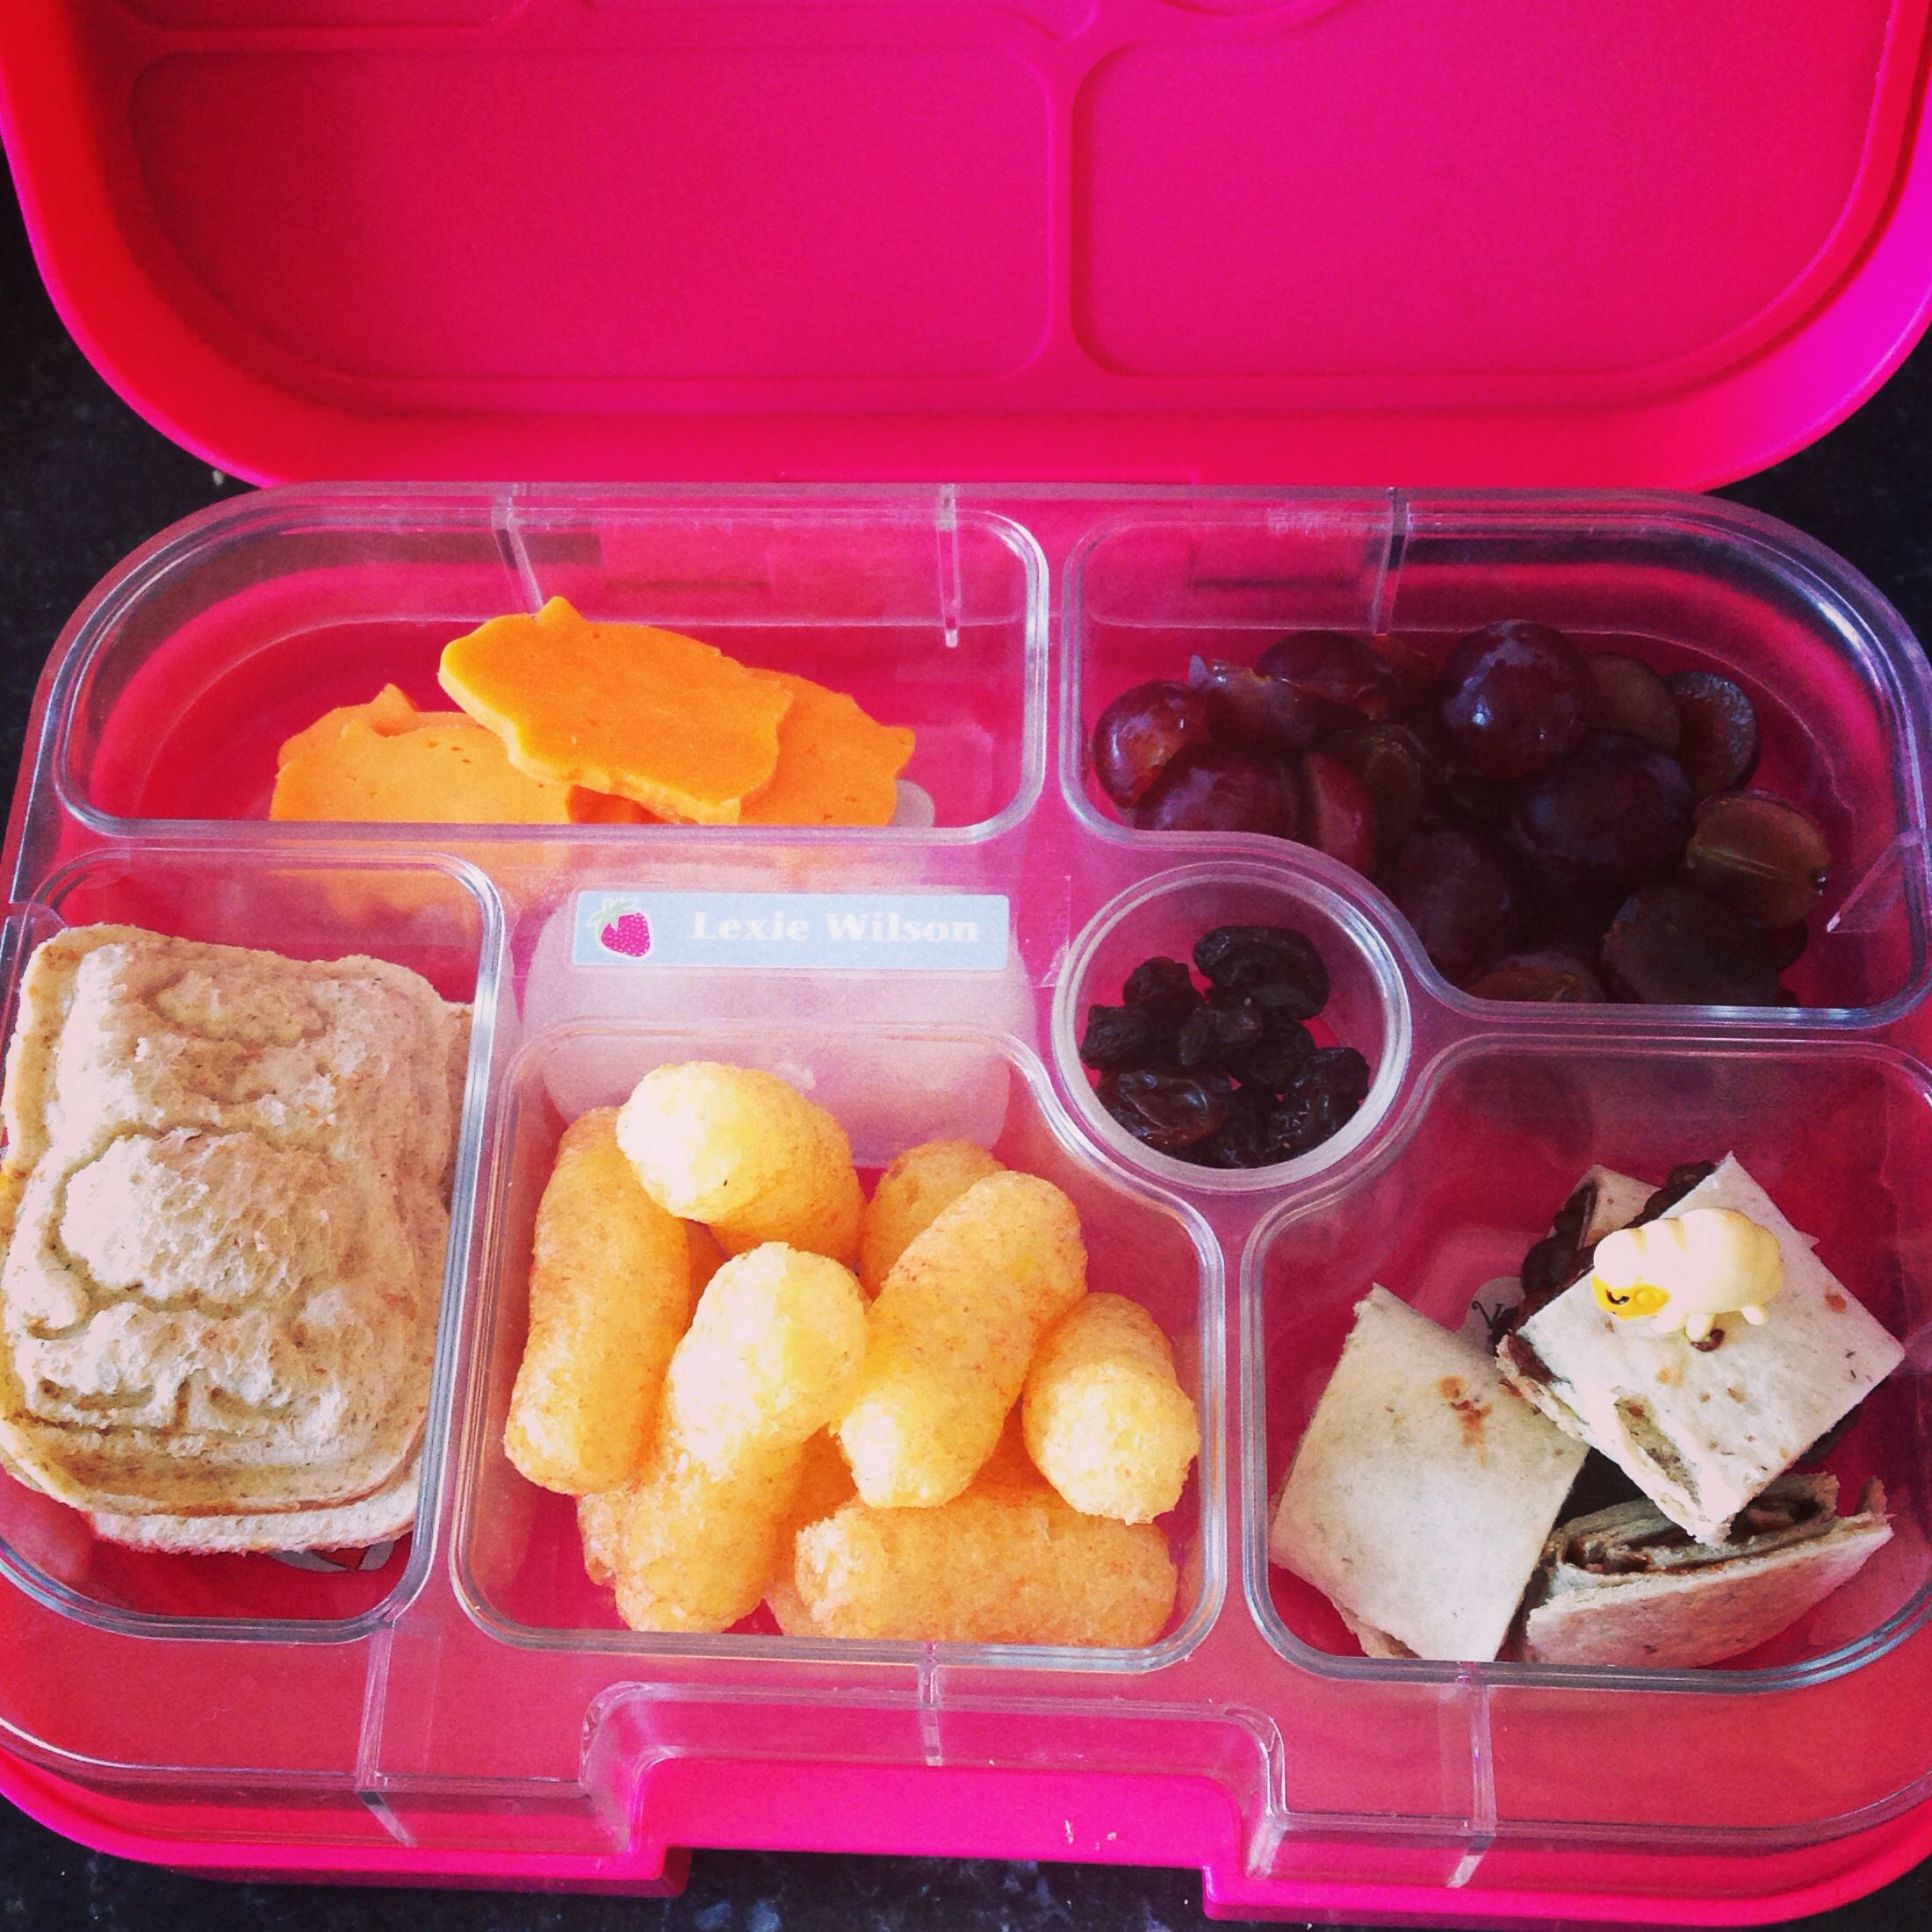 Yumbox Ideen Kindergarten Yumbox Lunch Ideas Kids Bento The Last Farm Themed Yumbox For Preschool In Preparation For